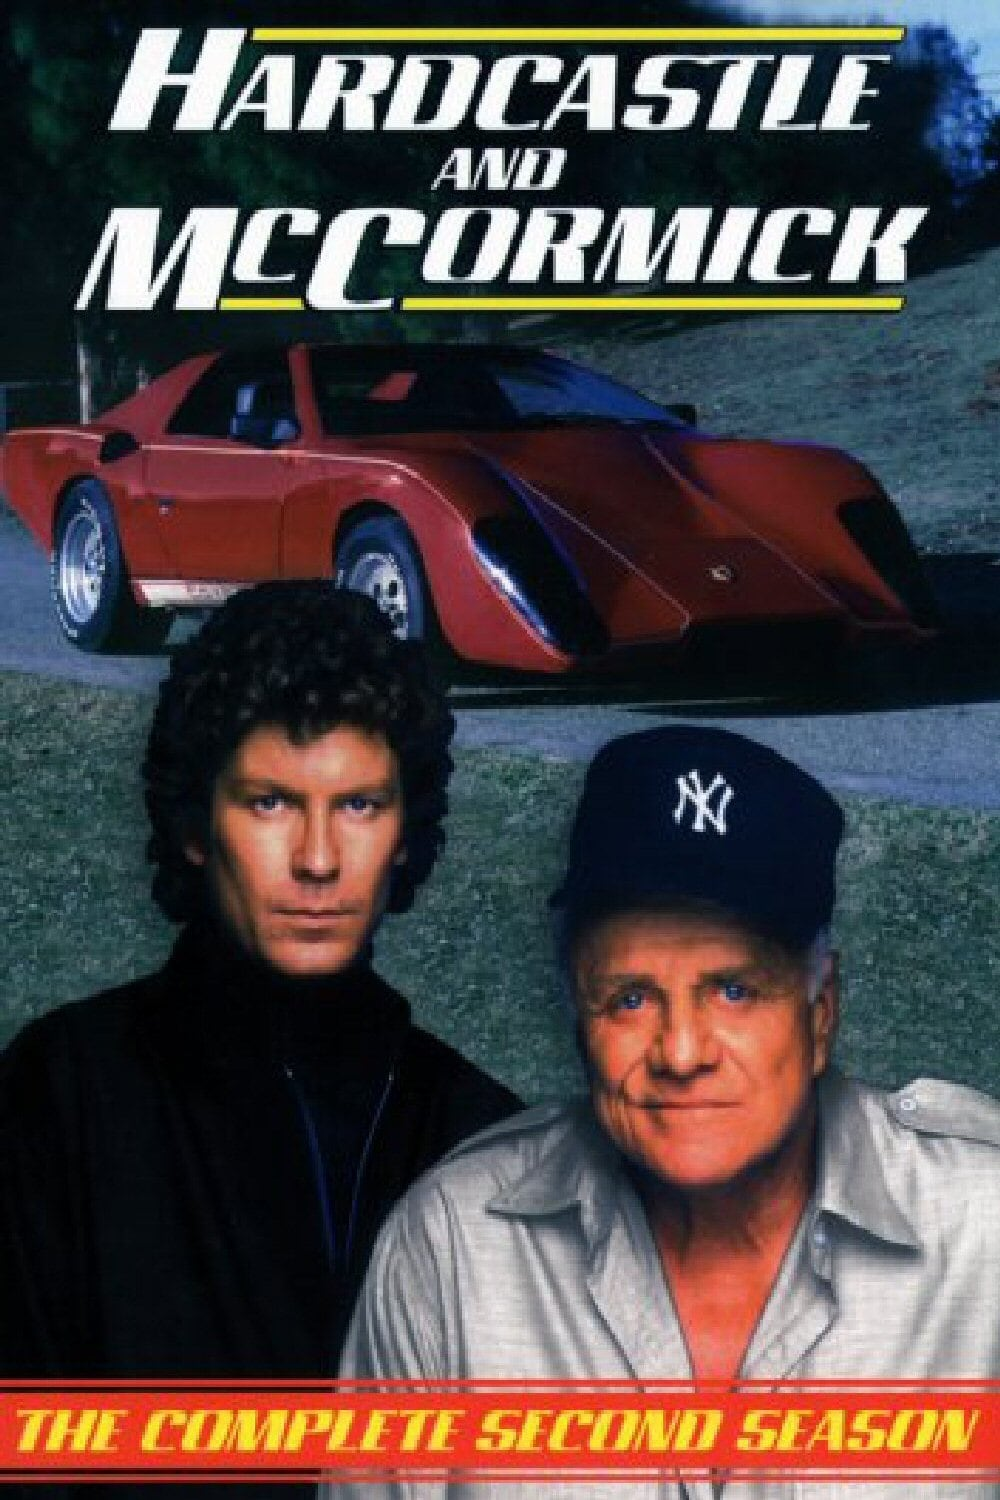 Hardcastle and McCormick Season 2